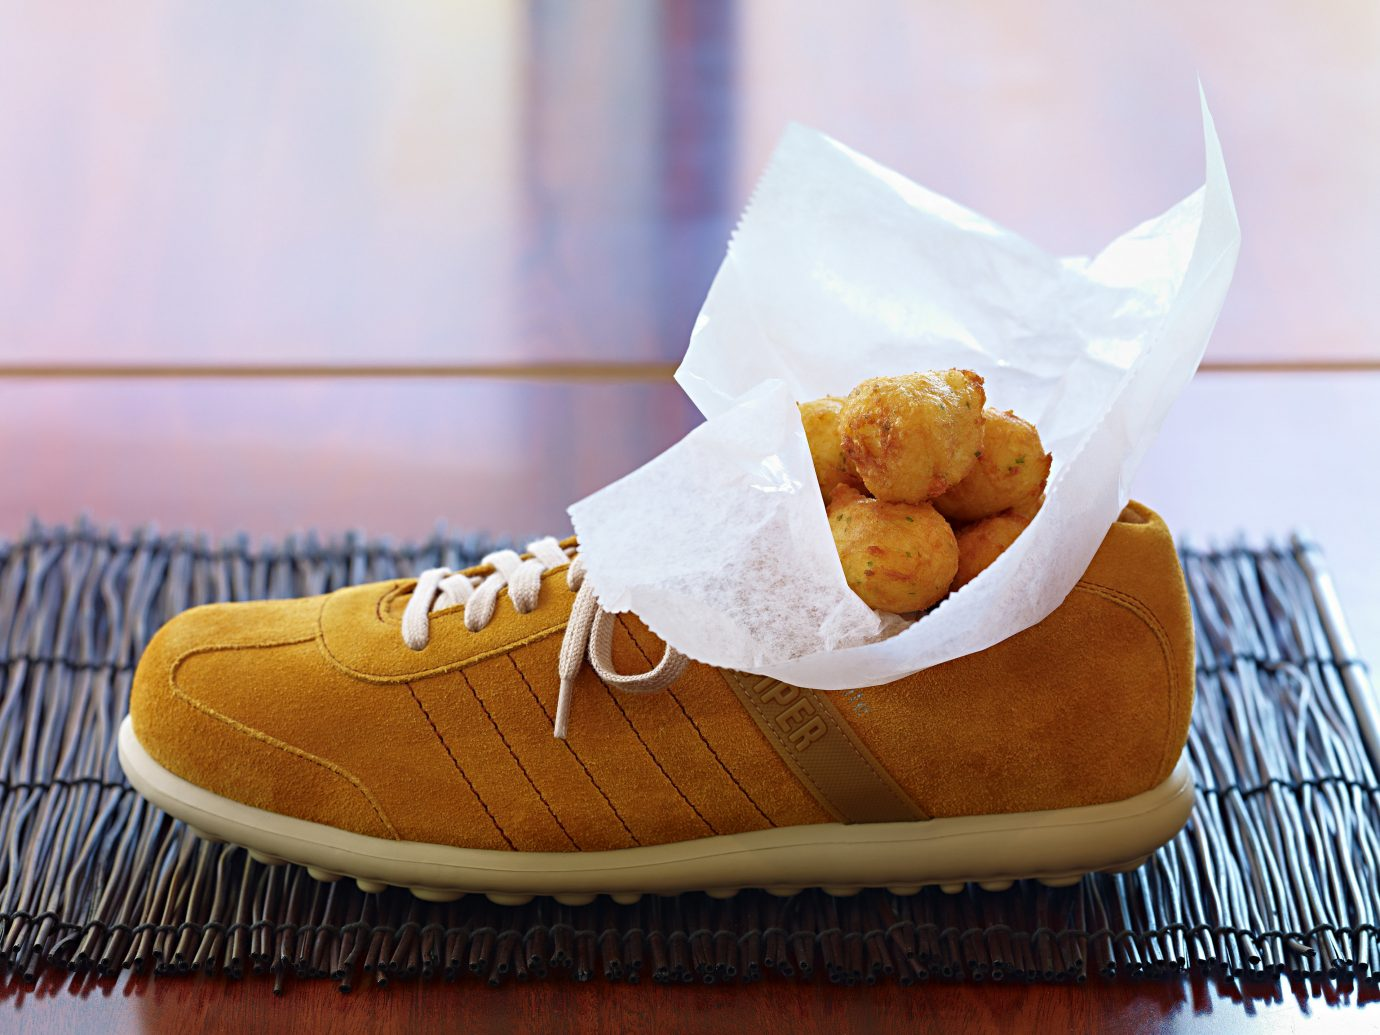 Food + Drink footwear yellow food shoe land plant produce dish sense leg flowering plant flavor